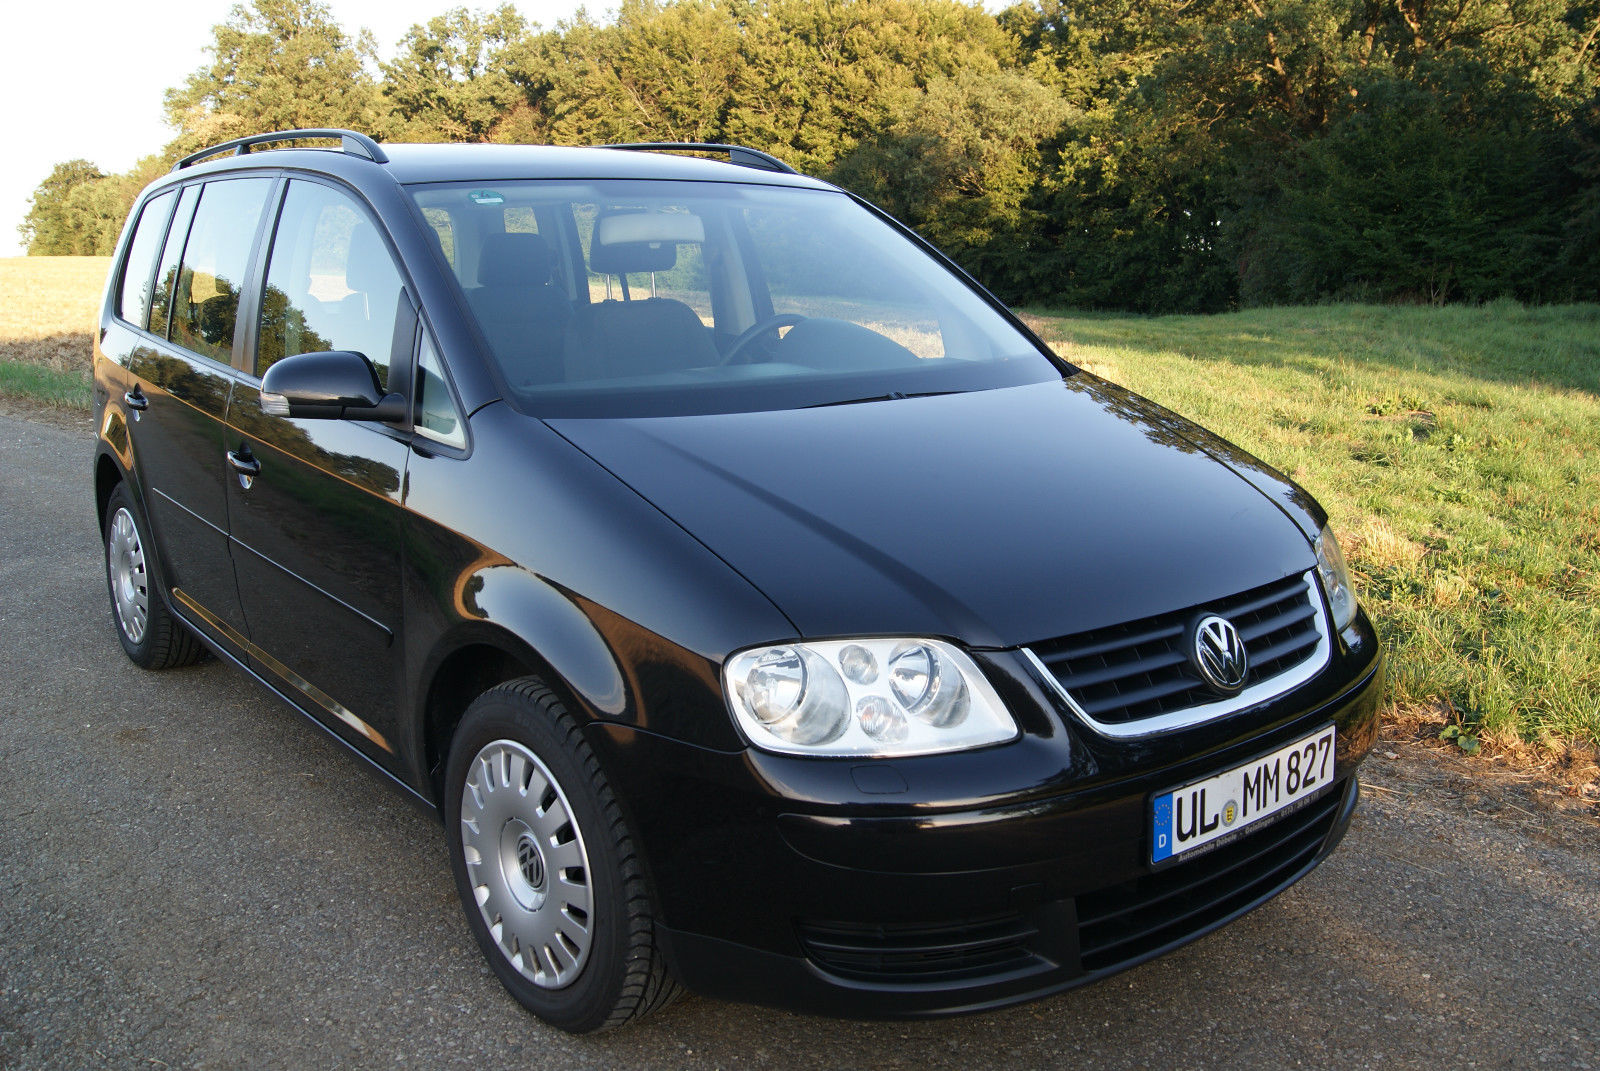 Volkswagen Touran 1.9 TDI 105 bhp Highline 5door MPV Tiptronic 2003